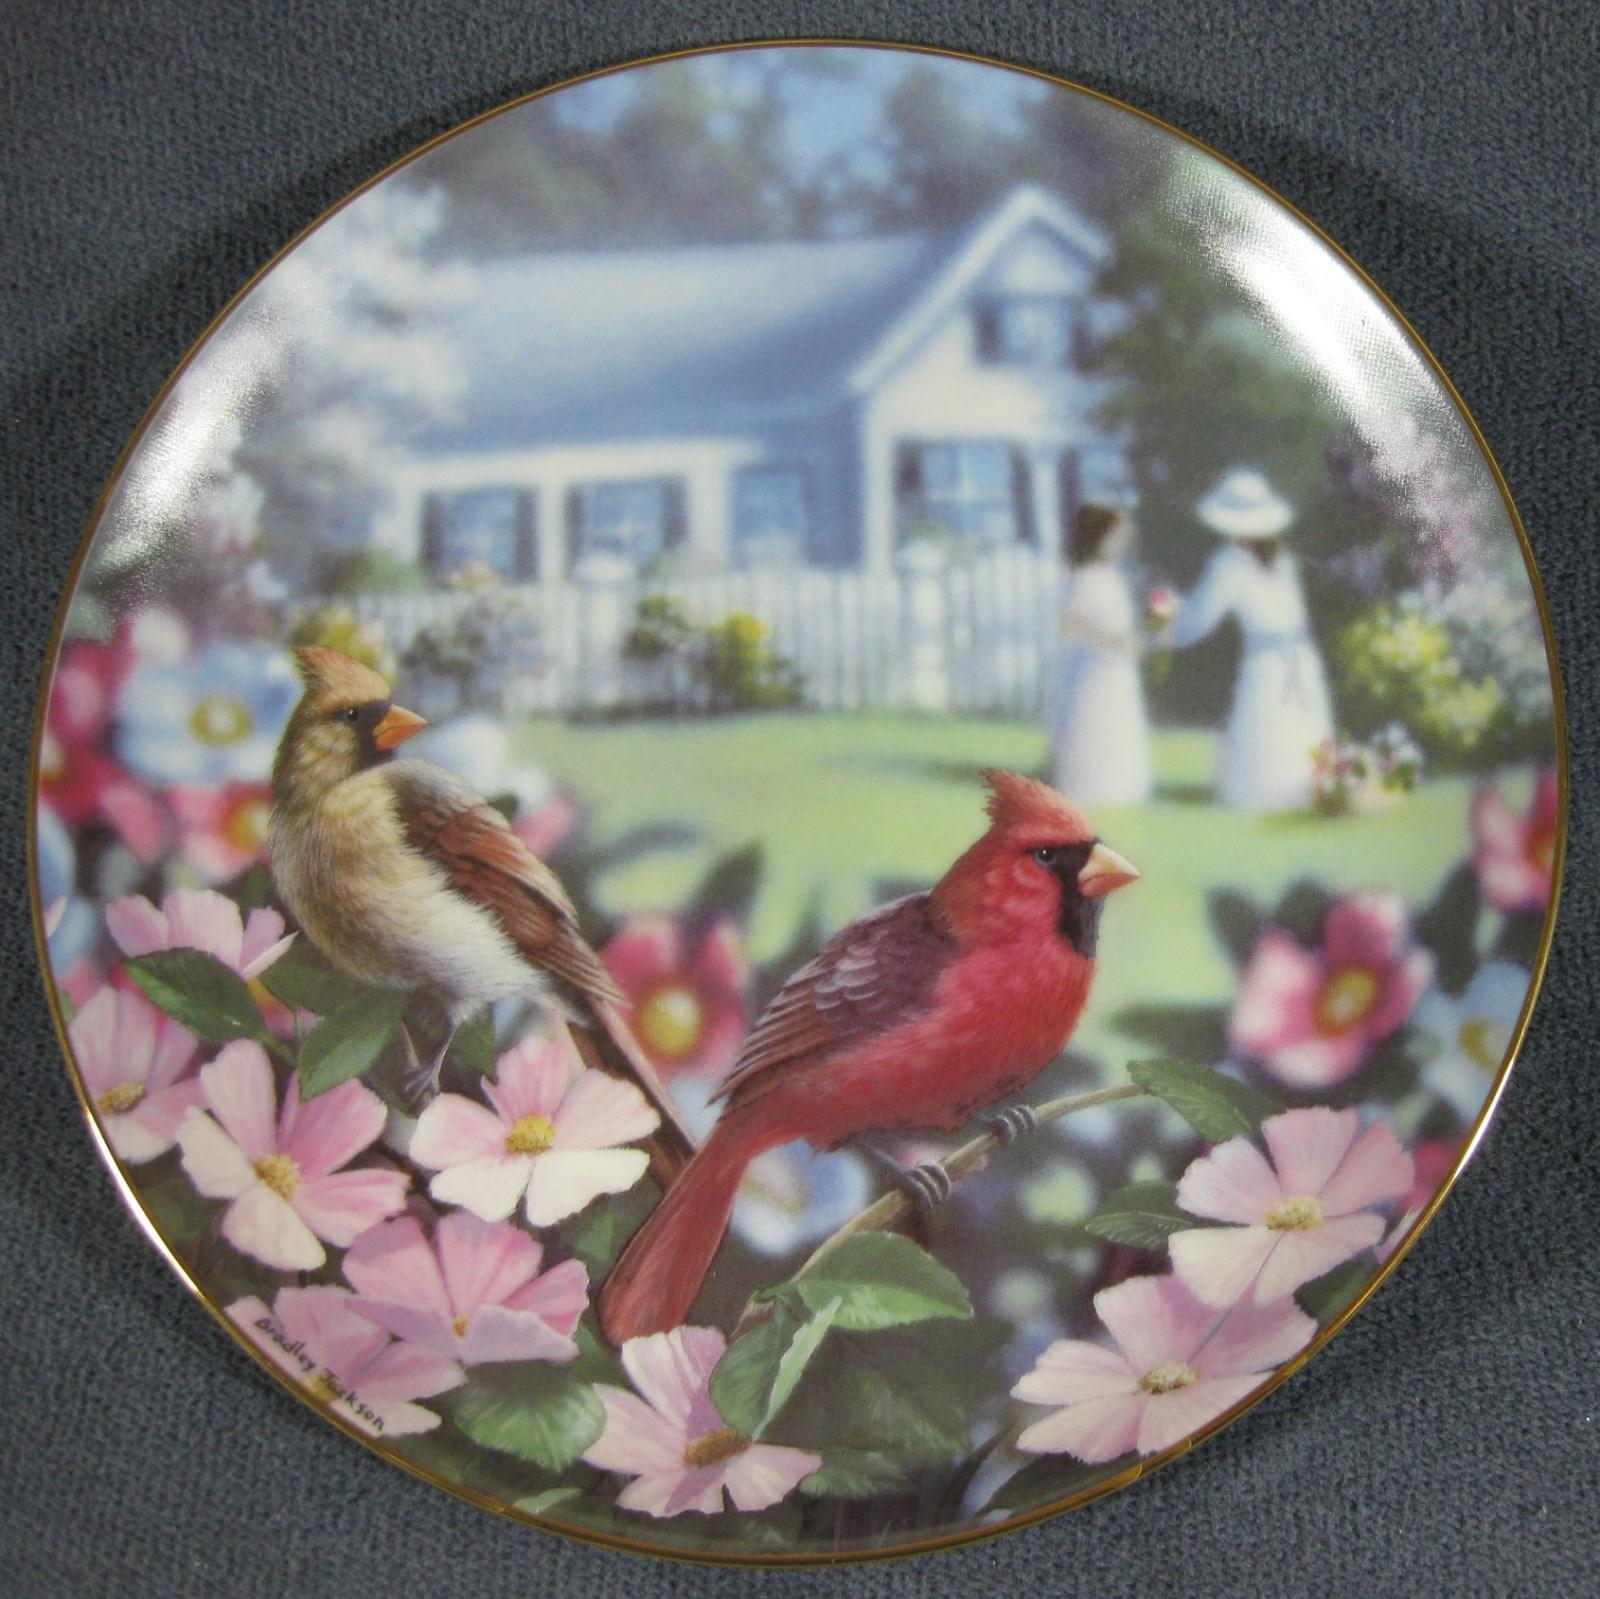 Primary image for Garden Gathering Family Album 1993 Danbury Mint Collector Plate Bradley Jackson